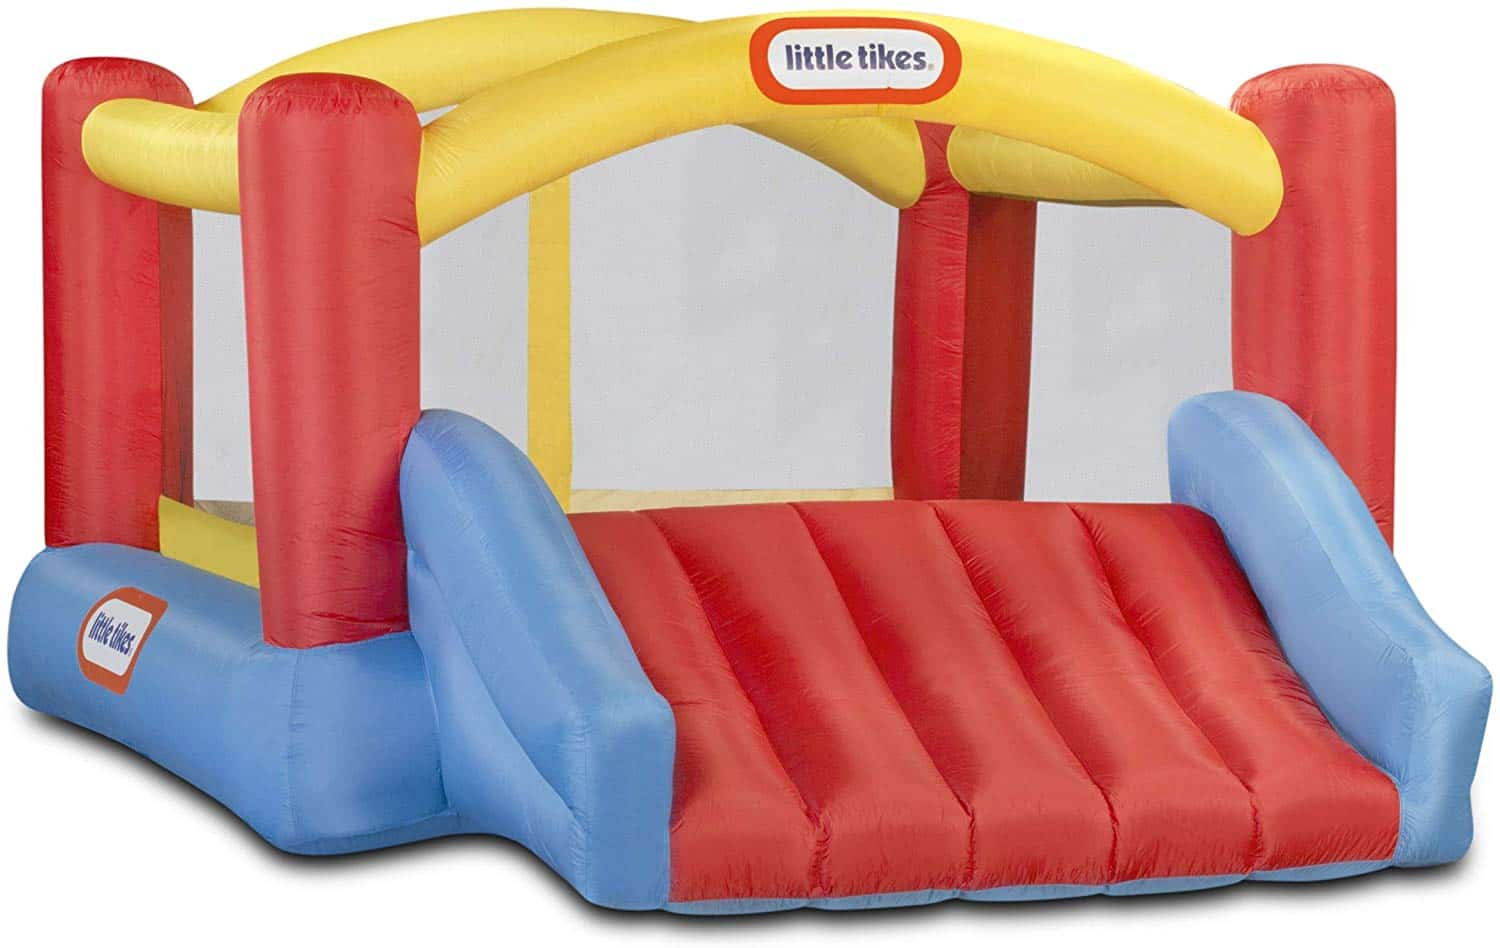 Little Tikes bouncy house and play area.